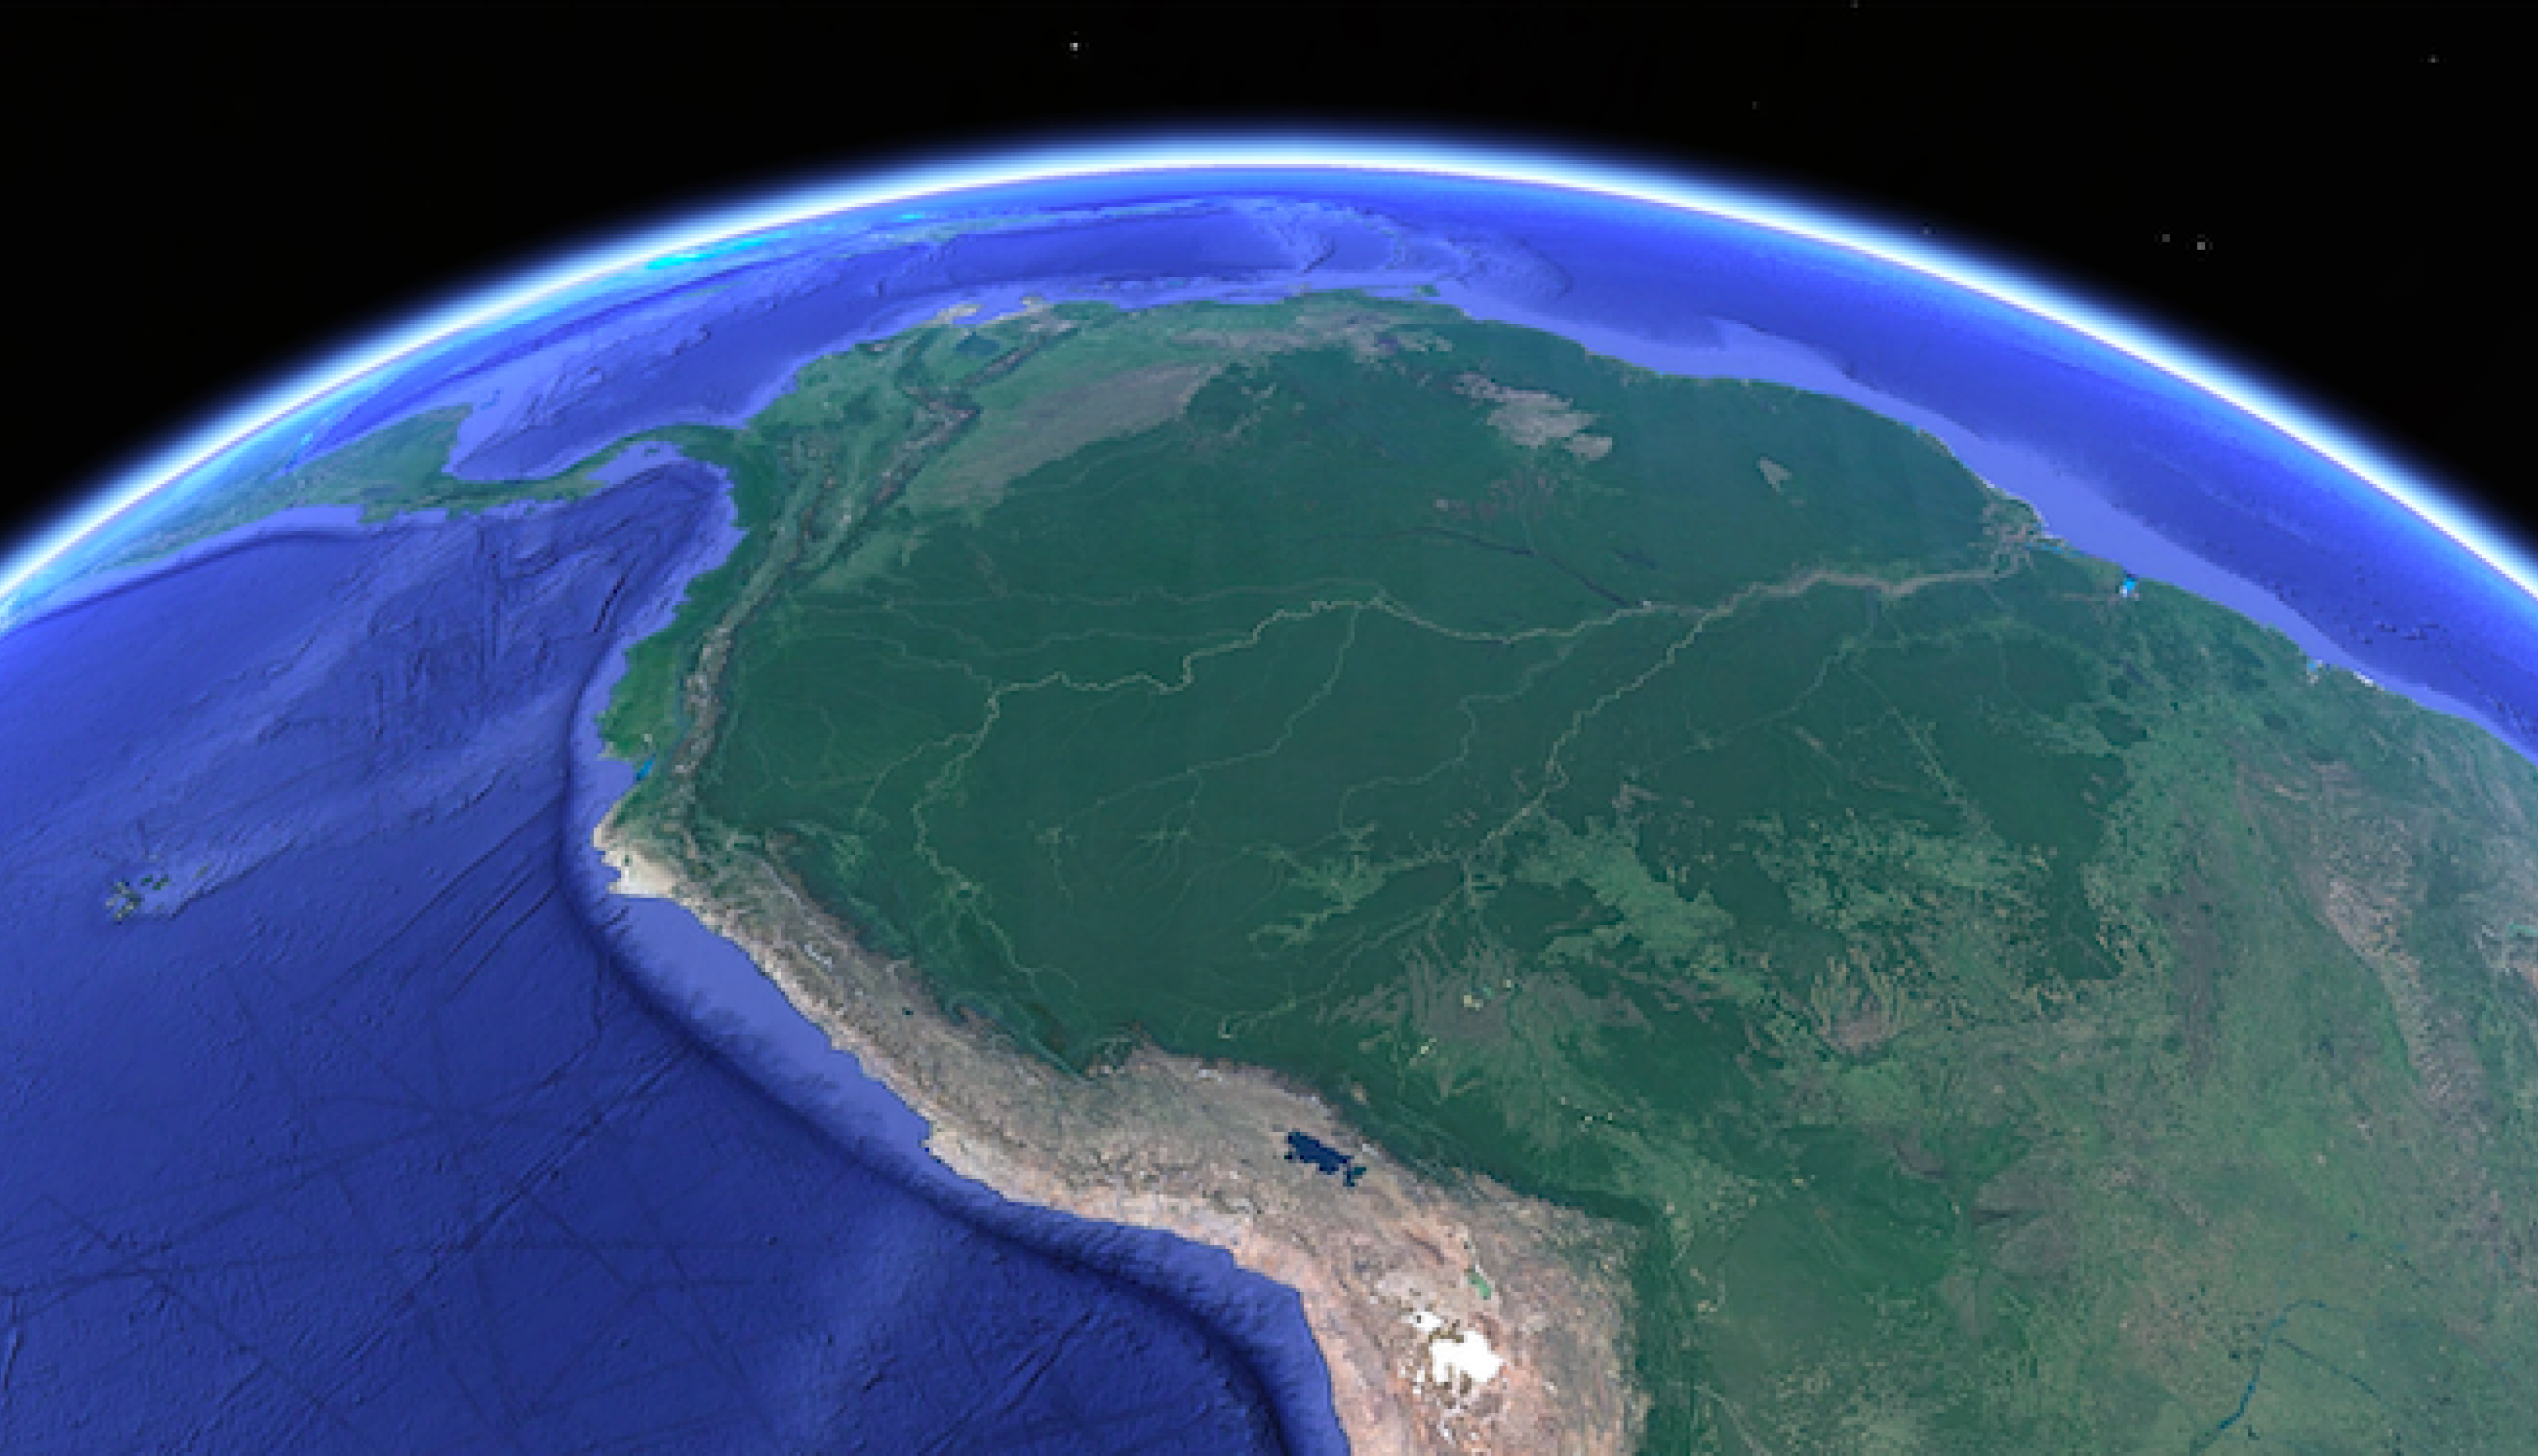 Google Earth image of Brazil - SERVIR Amazonia